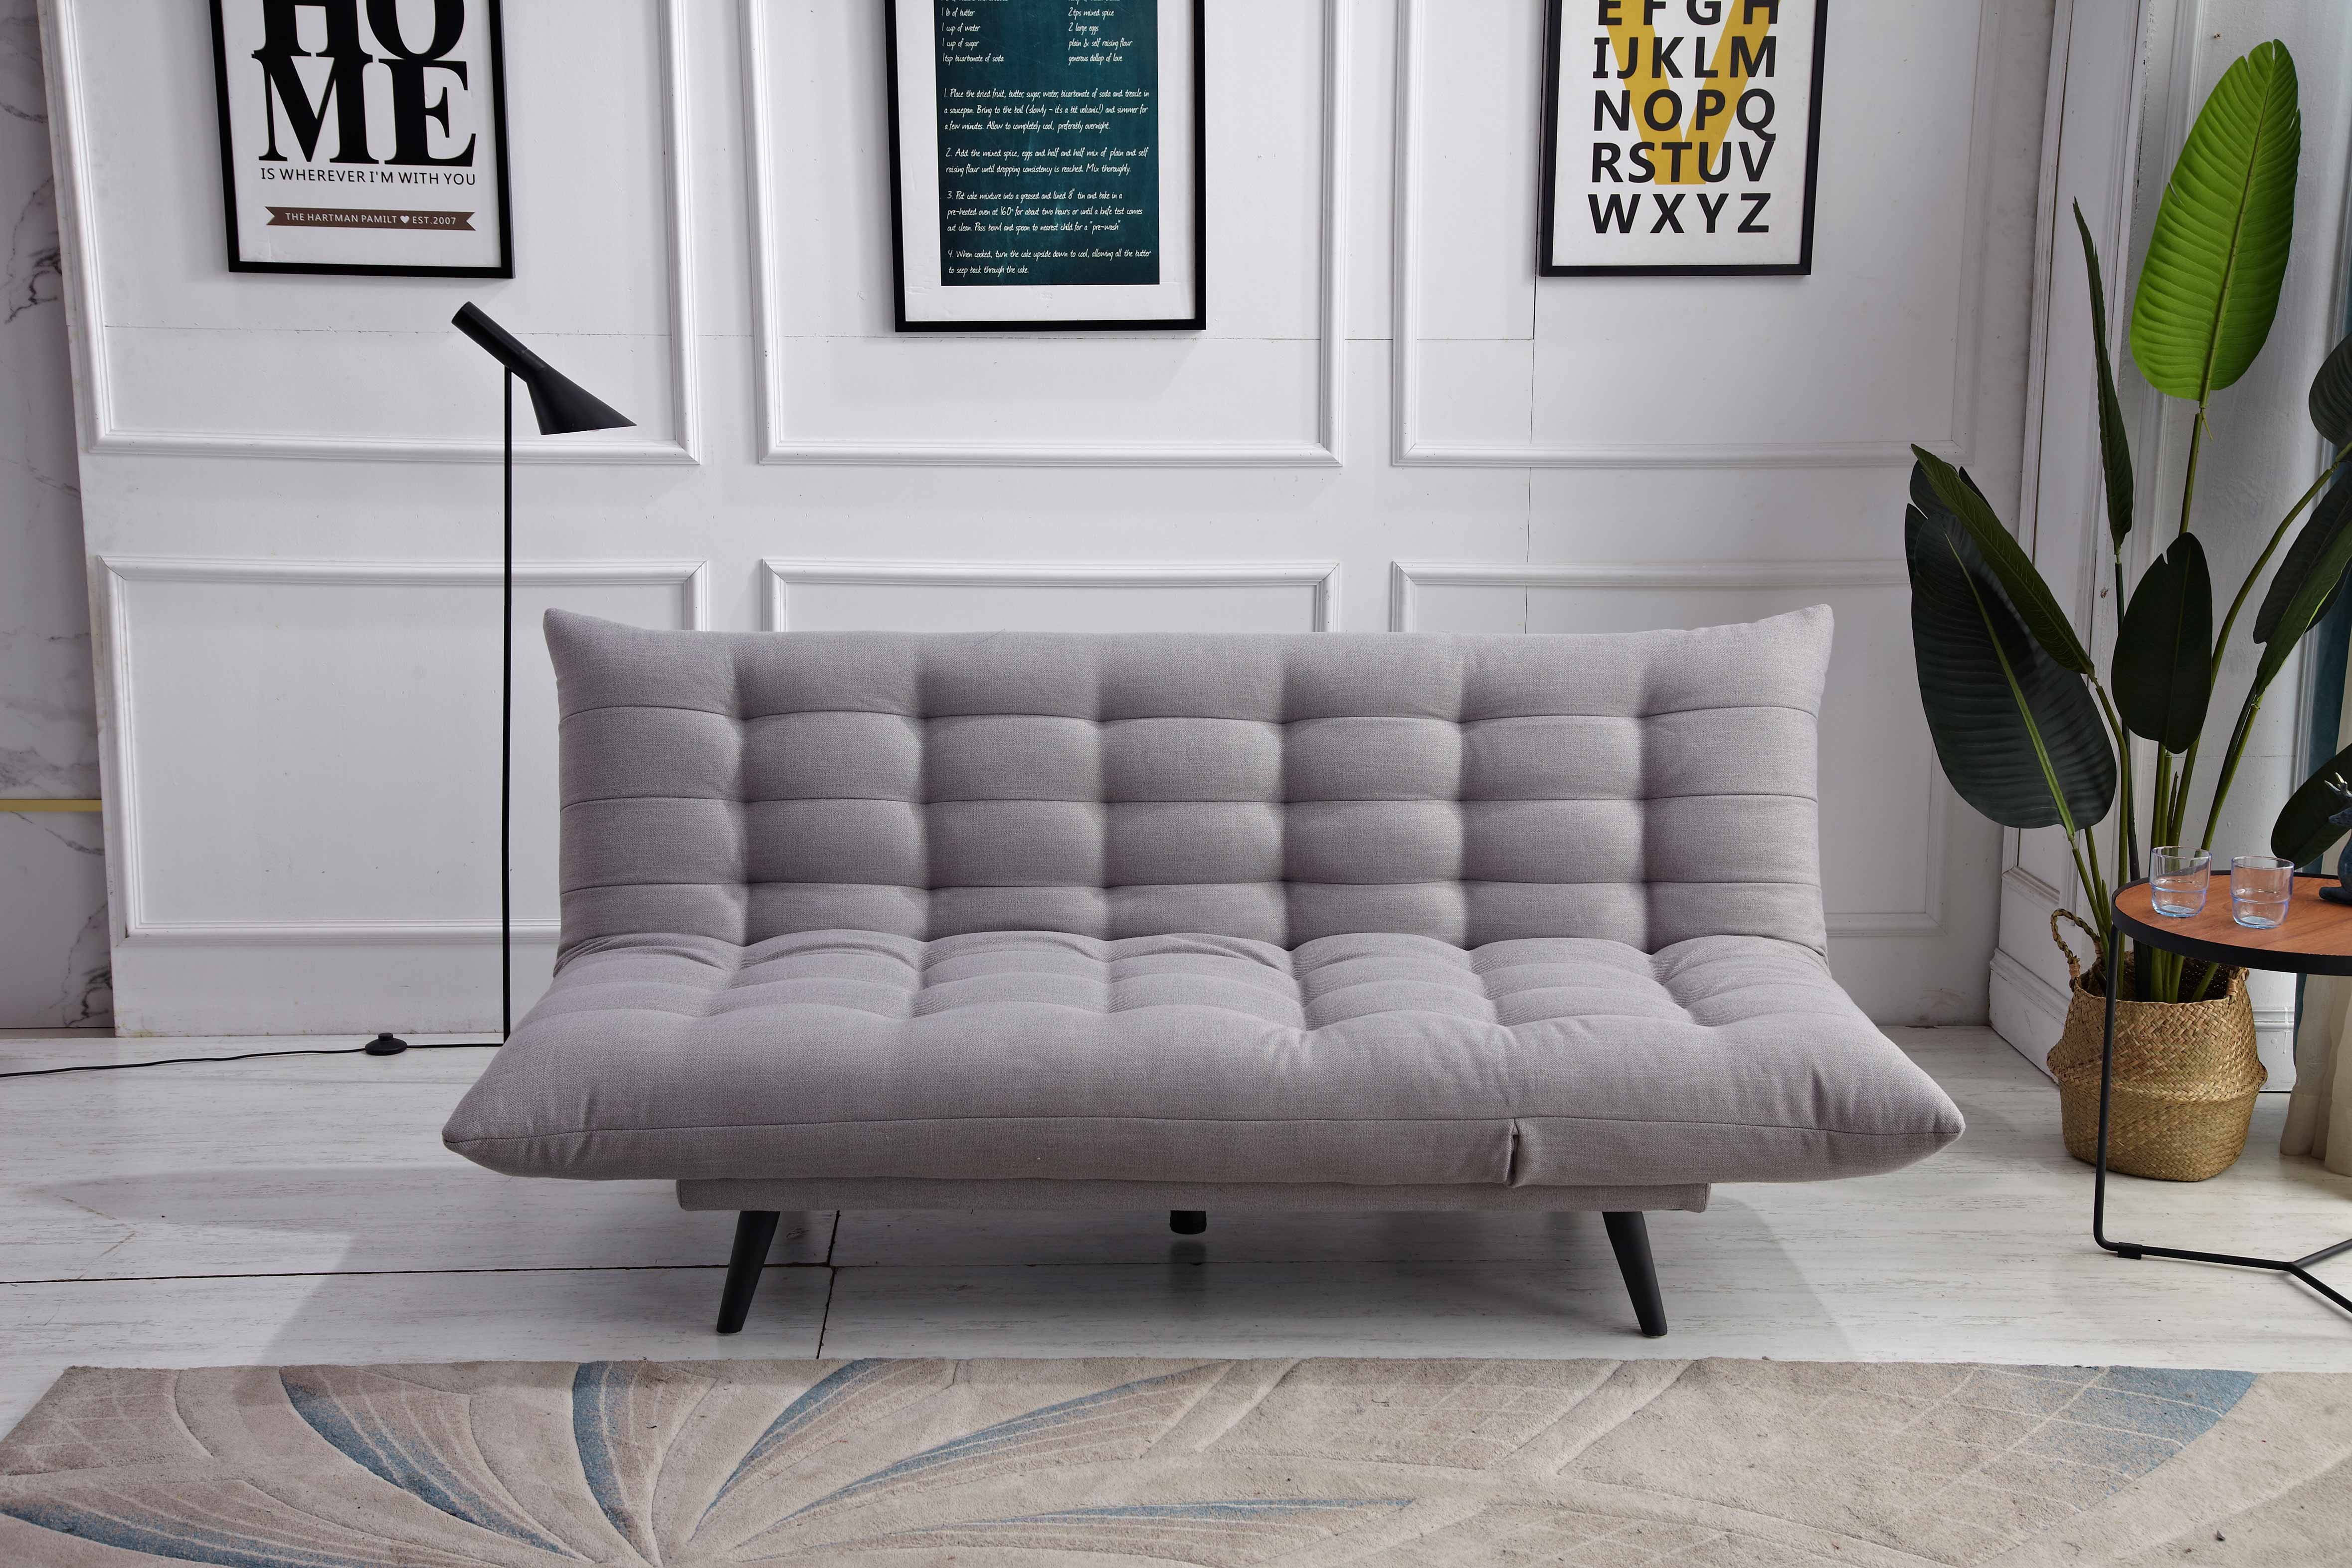 8357 Multi Functional Futon Sofa Bed 8357 Milton Greens Stars Lowest Price Possible With Best Possible Value